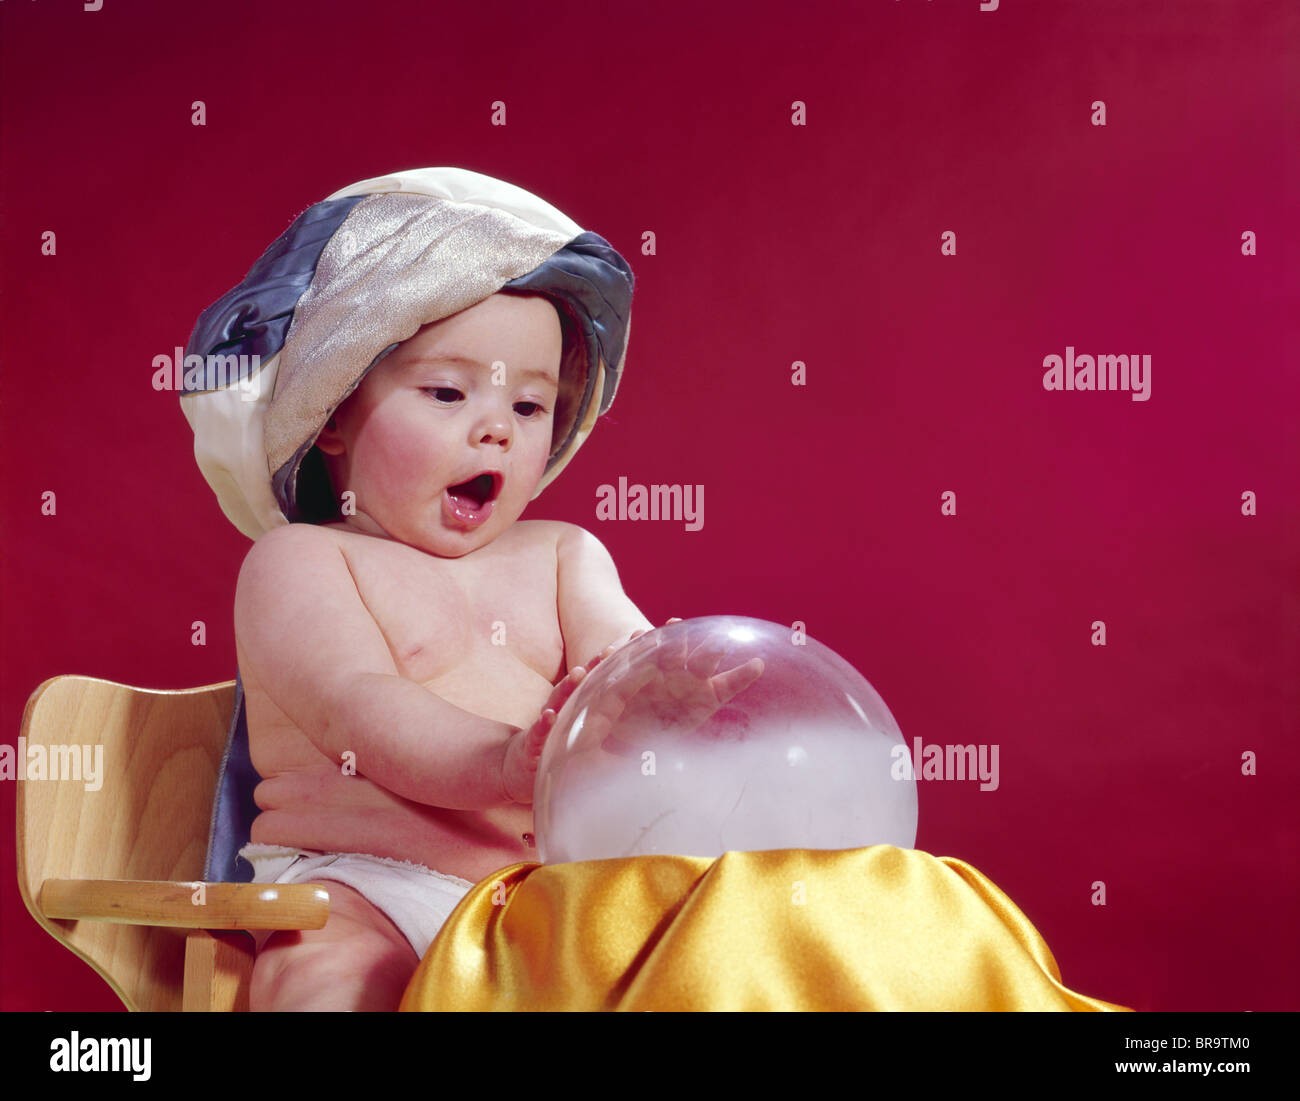 Baby Teller 1960s Baby Fortune Teller Wearing Turban Seated With Crystal